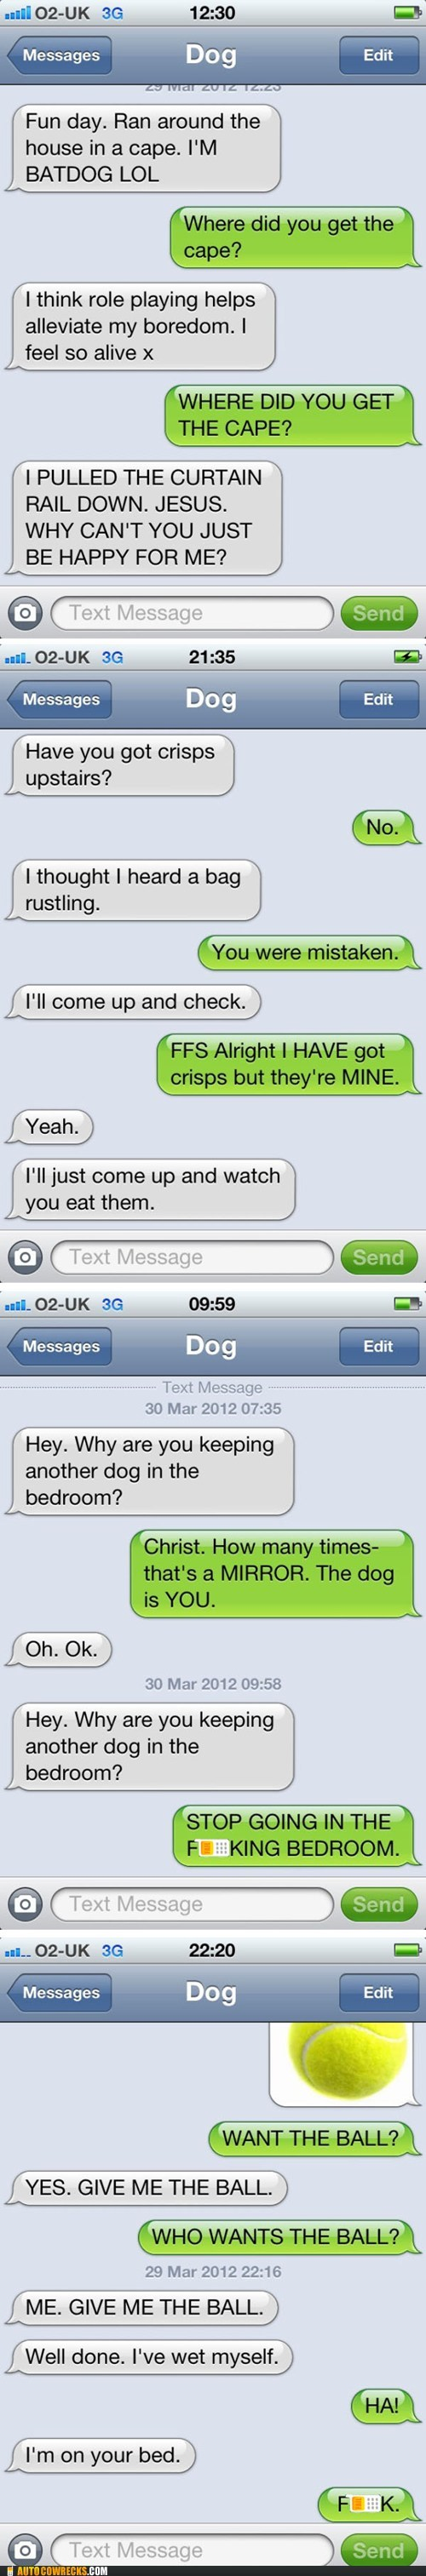 Autocowrecks: If Dogs Could Text